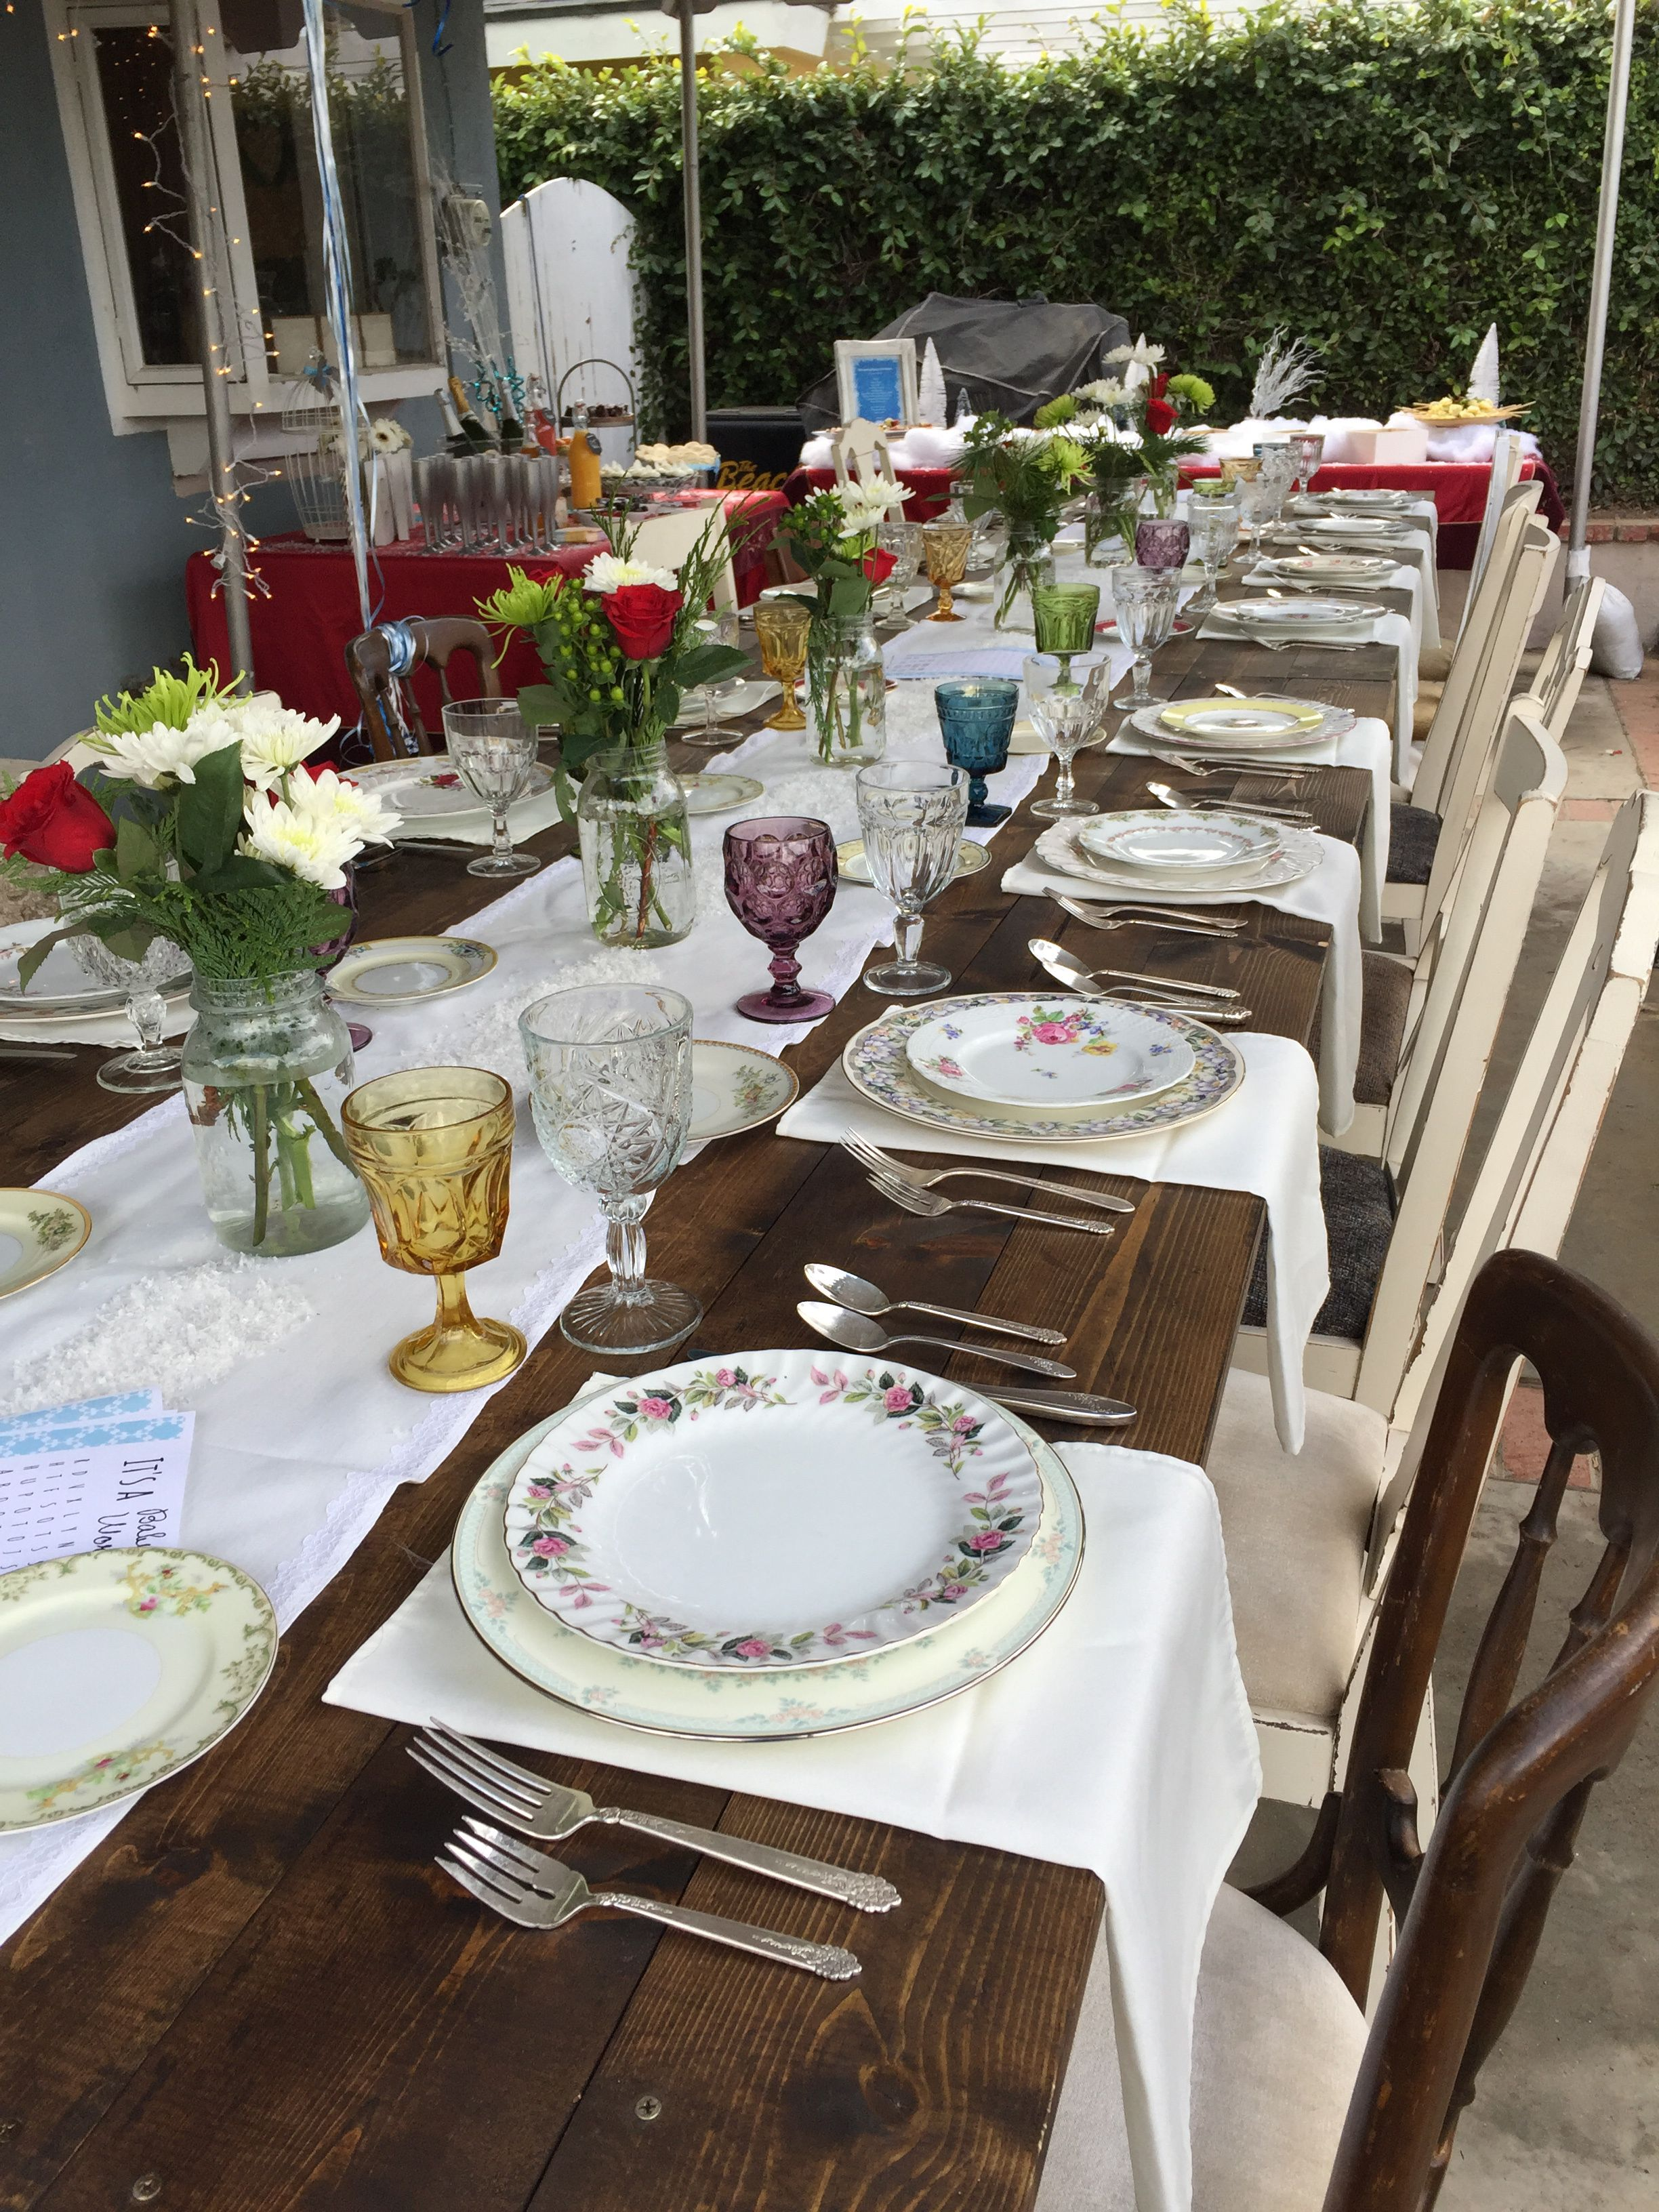 Farm Tables and assorted tableware for a baby shower